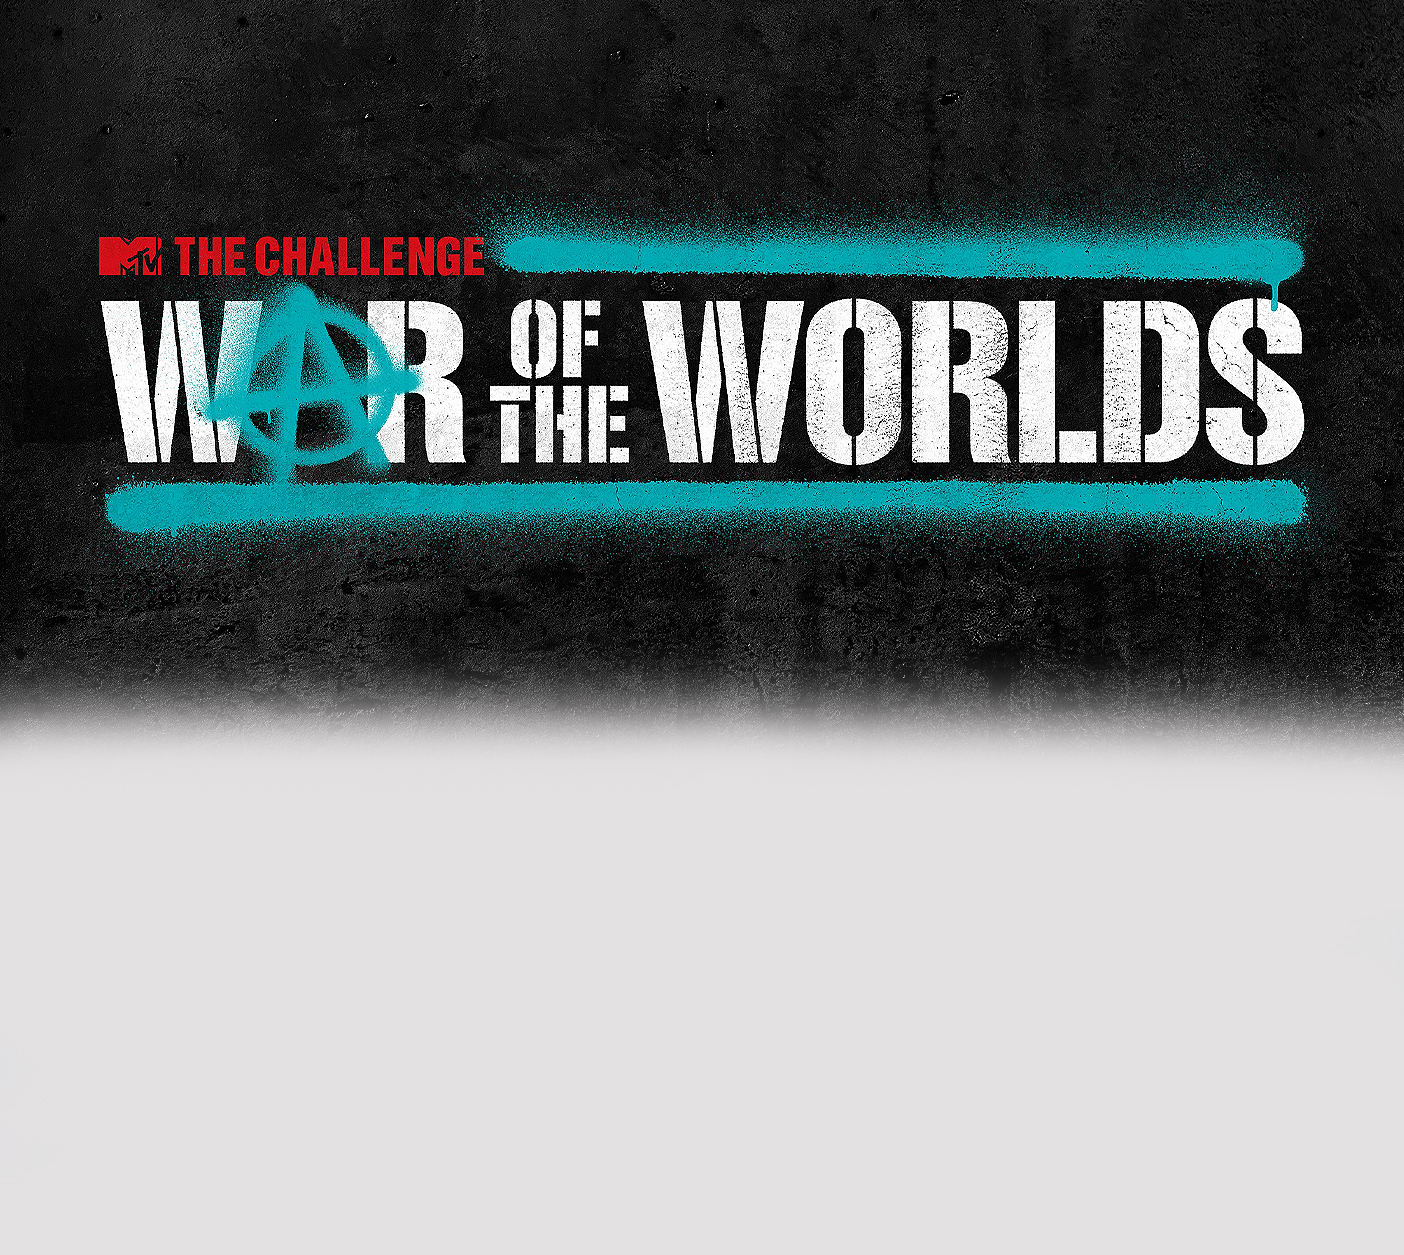 Book Tickets For The Challenge: War of the Worlds Reunion